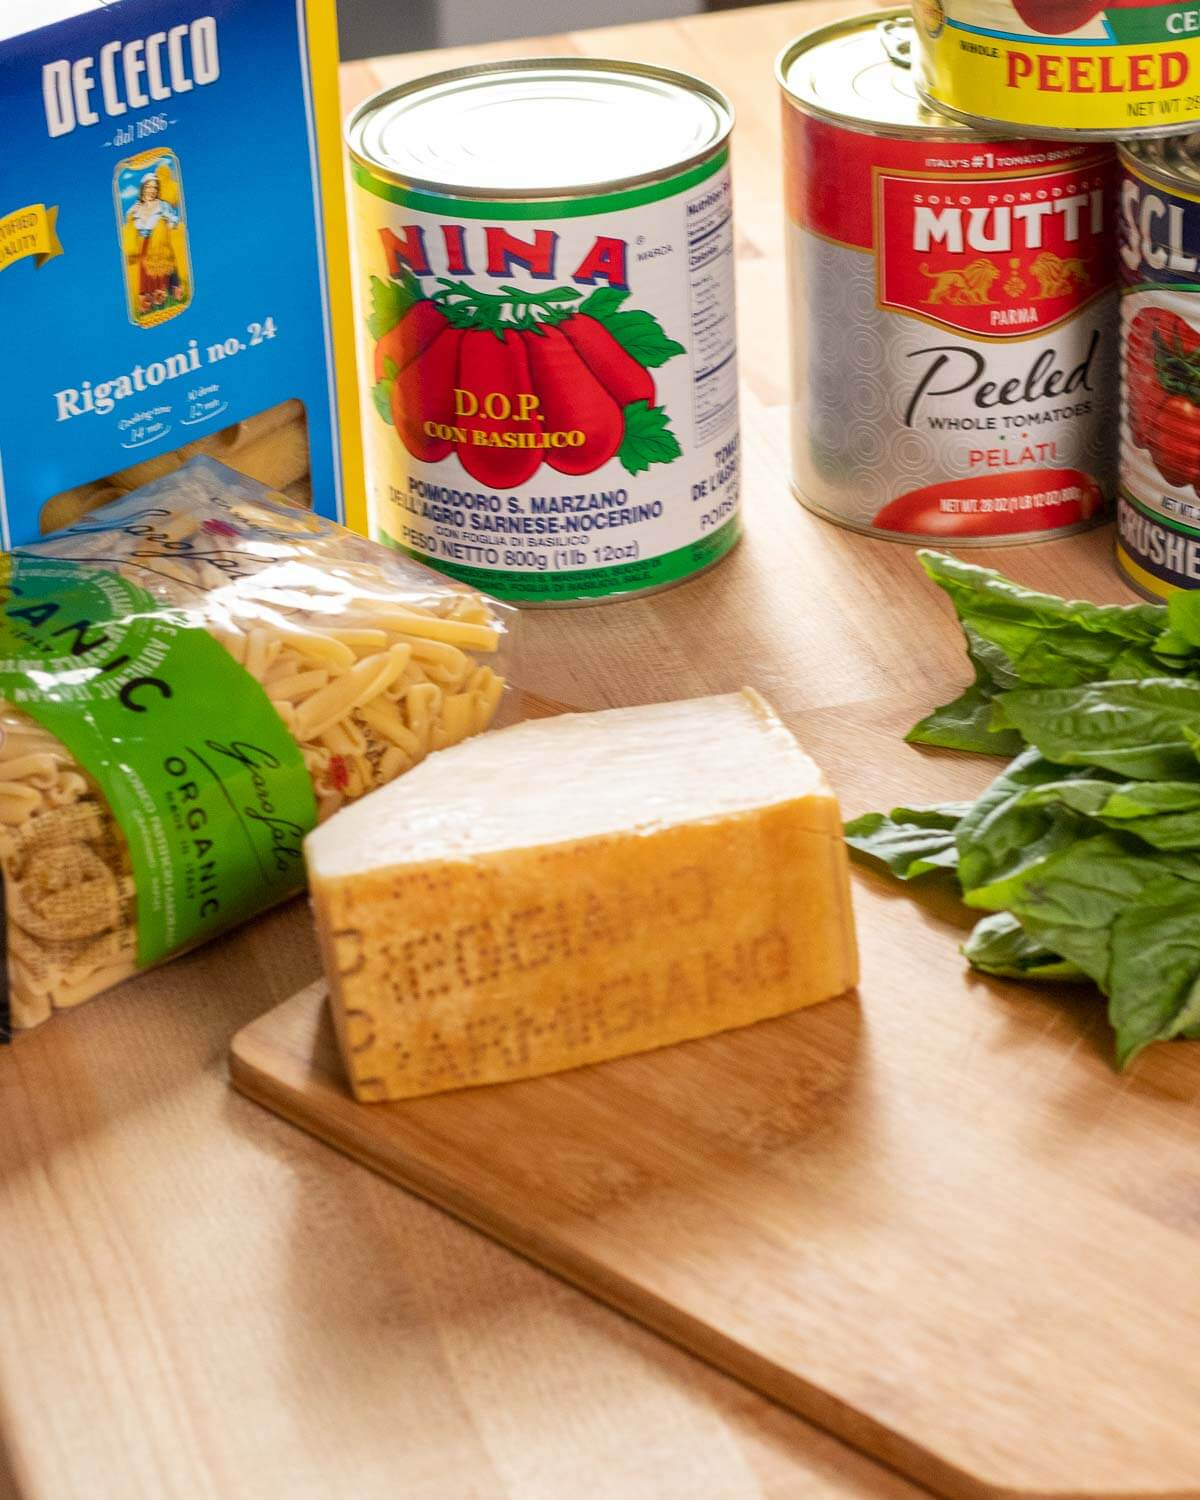 Ingredients shown: rigatoni and casarecce pasta, 4 cans of plum tomatoes, basil, and block of parmesan cheese.